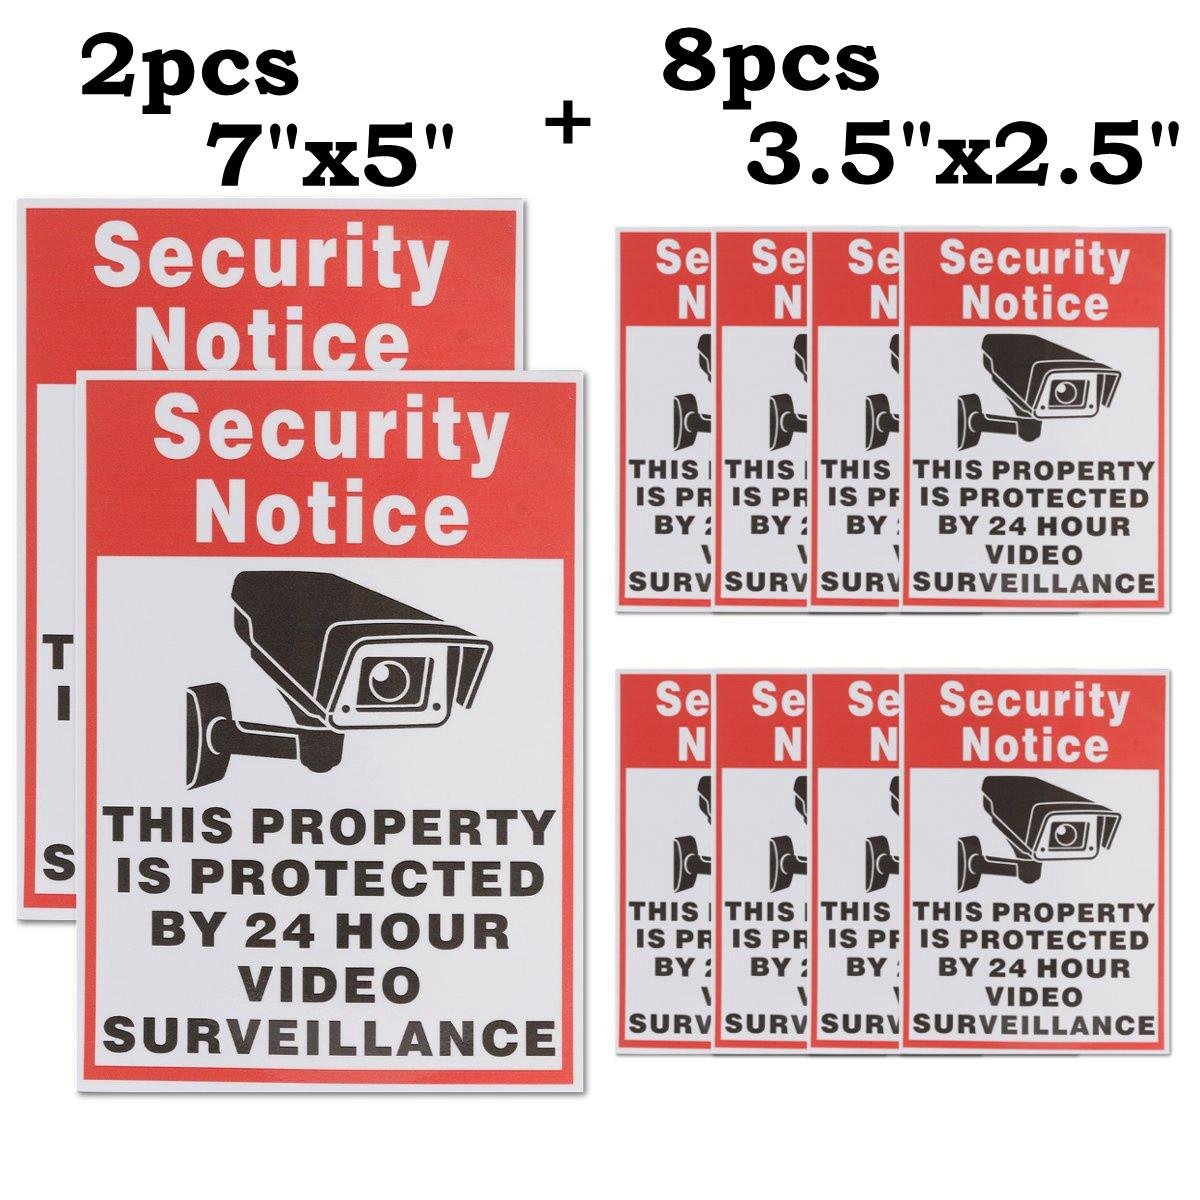 Safurance 10pcs/lot Waterproof Sunscreen PVC Home CCTV Video Surveillance Security Camera Alarm Sticker Warning Decal Signs пульт behringer pmp1680s